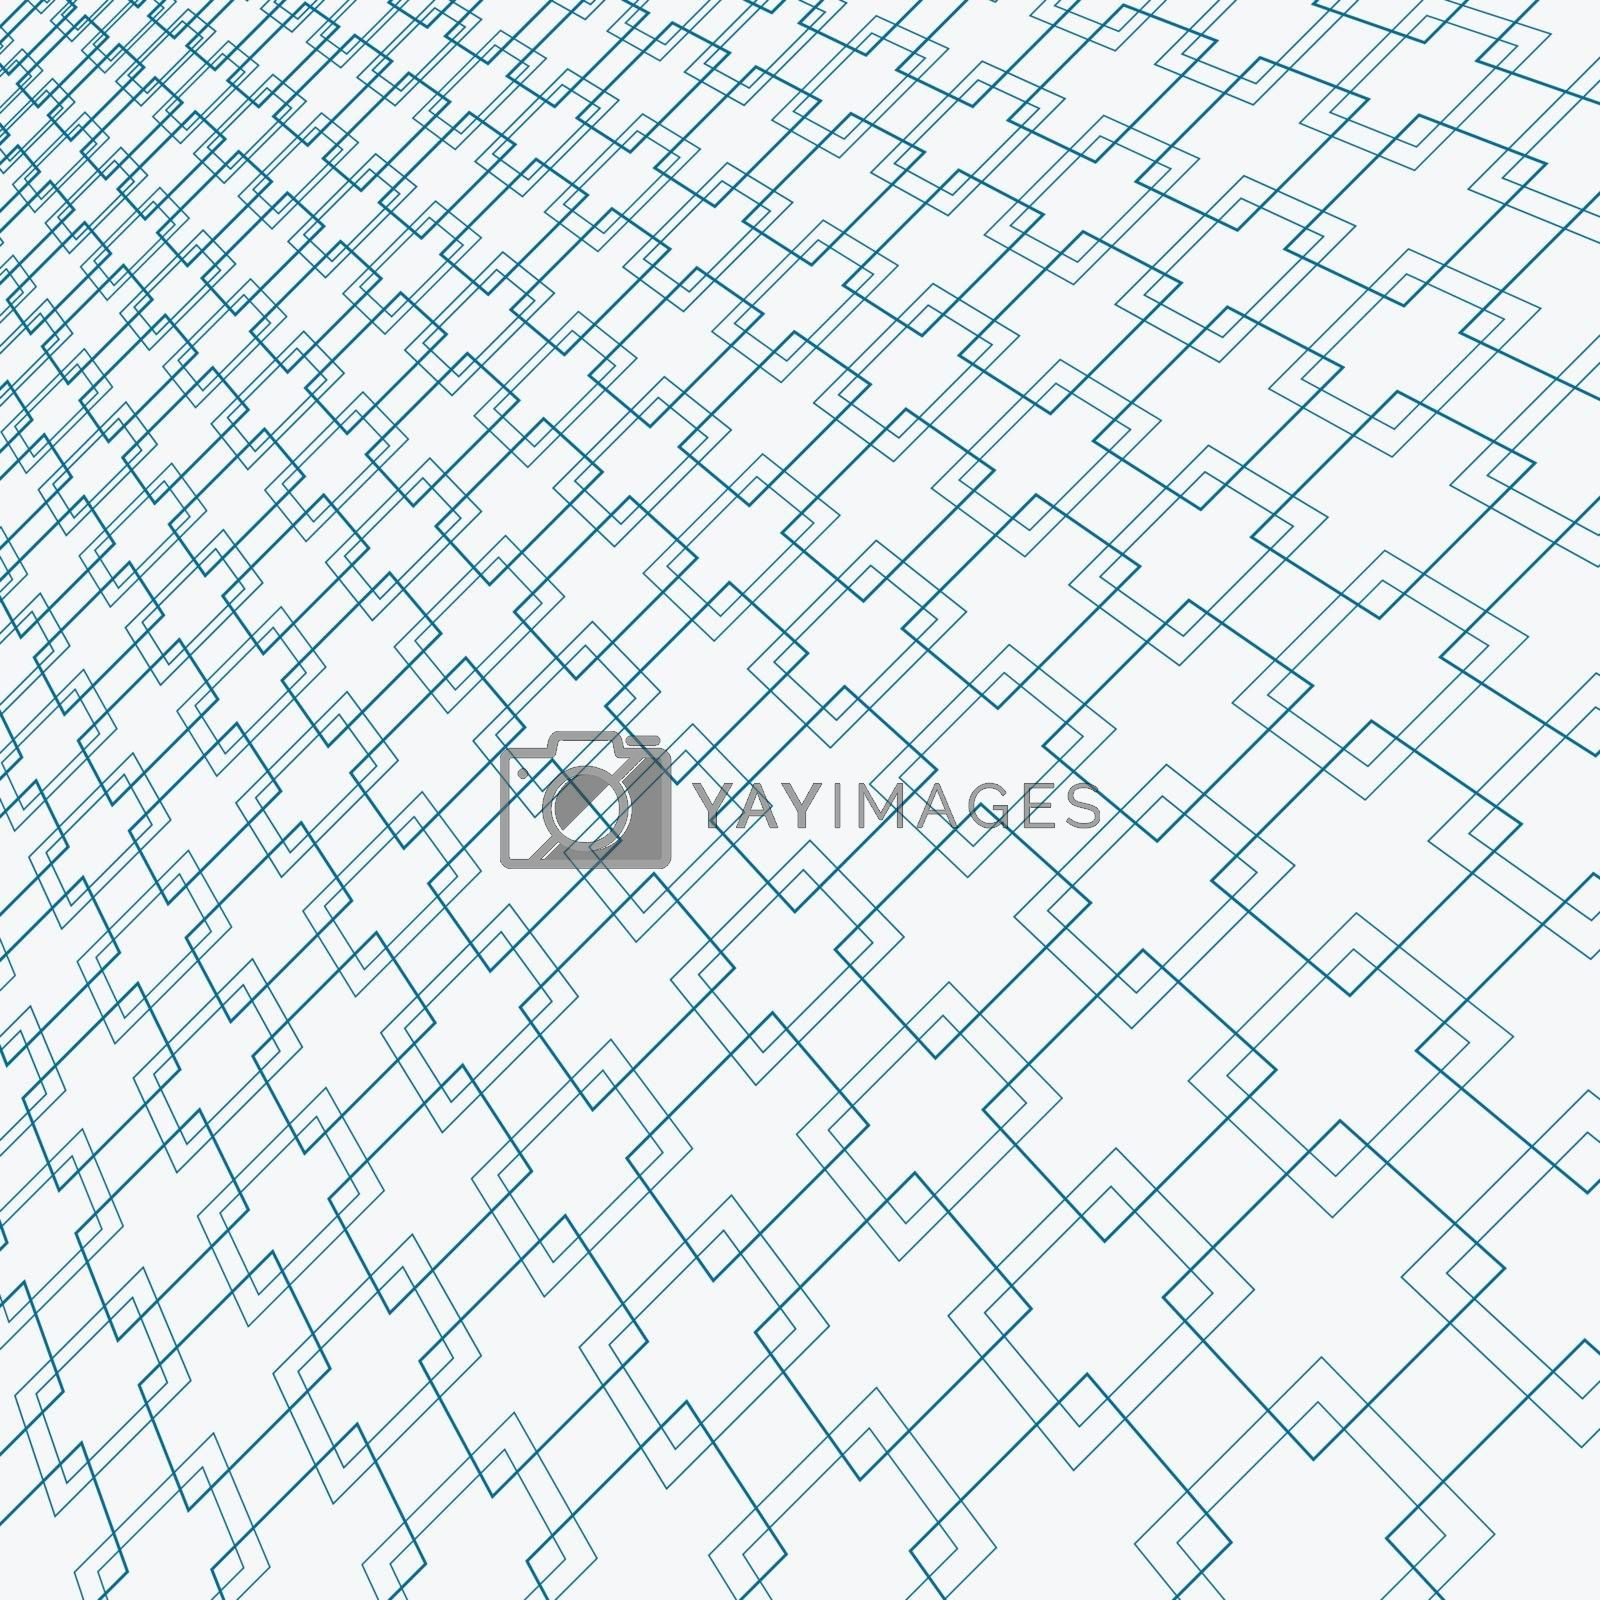 Abstract blue lines squares pattern overlapping perspective on white background. Vector illustration